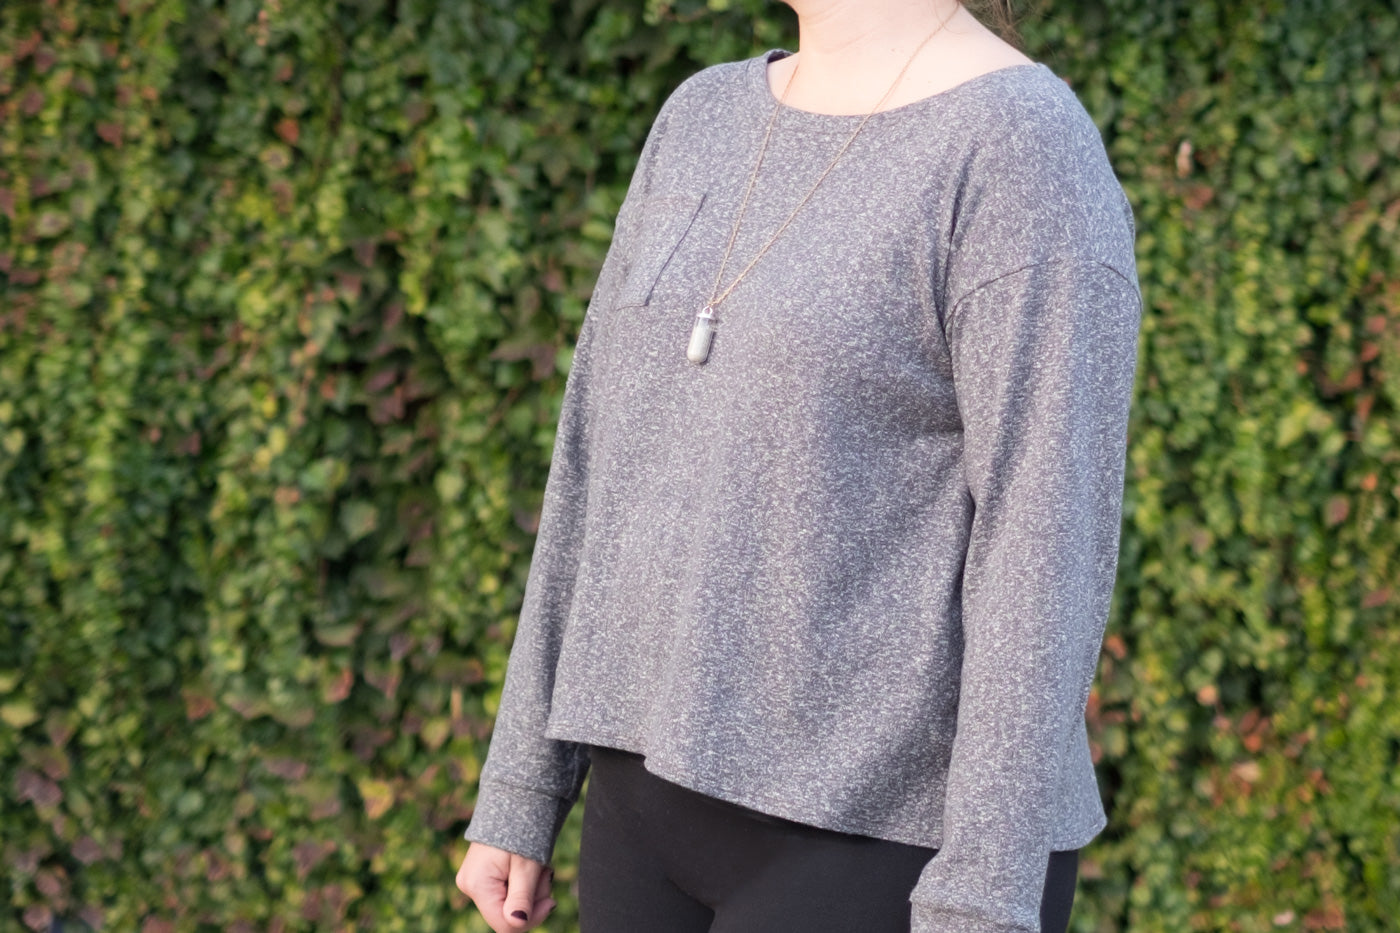 Finsihed Long Sleeve Wanderlust Tee with Cuff